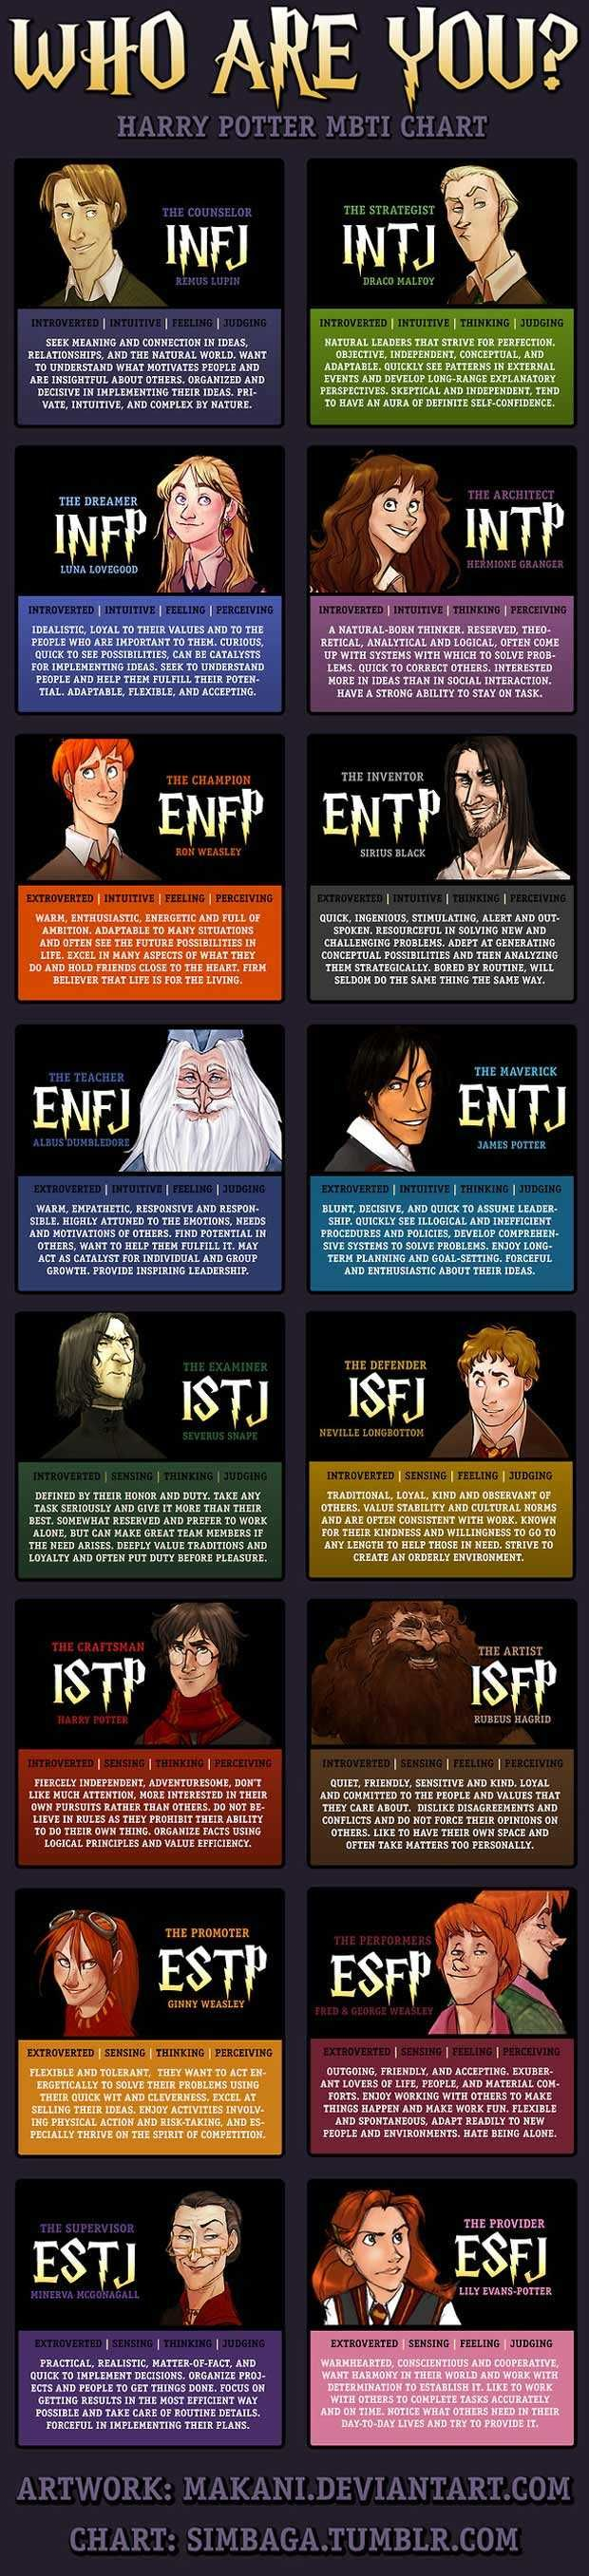 16 Personalties Small Dump Imgur Harry Potter Personality Mbti Charts Harry Potter